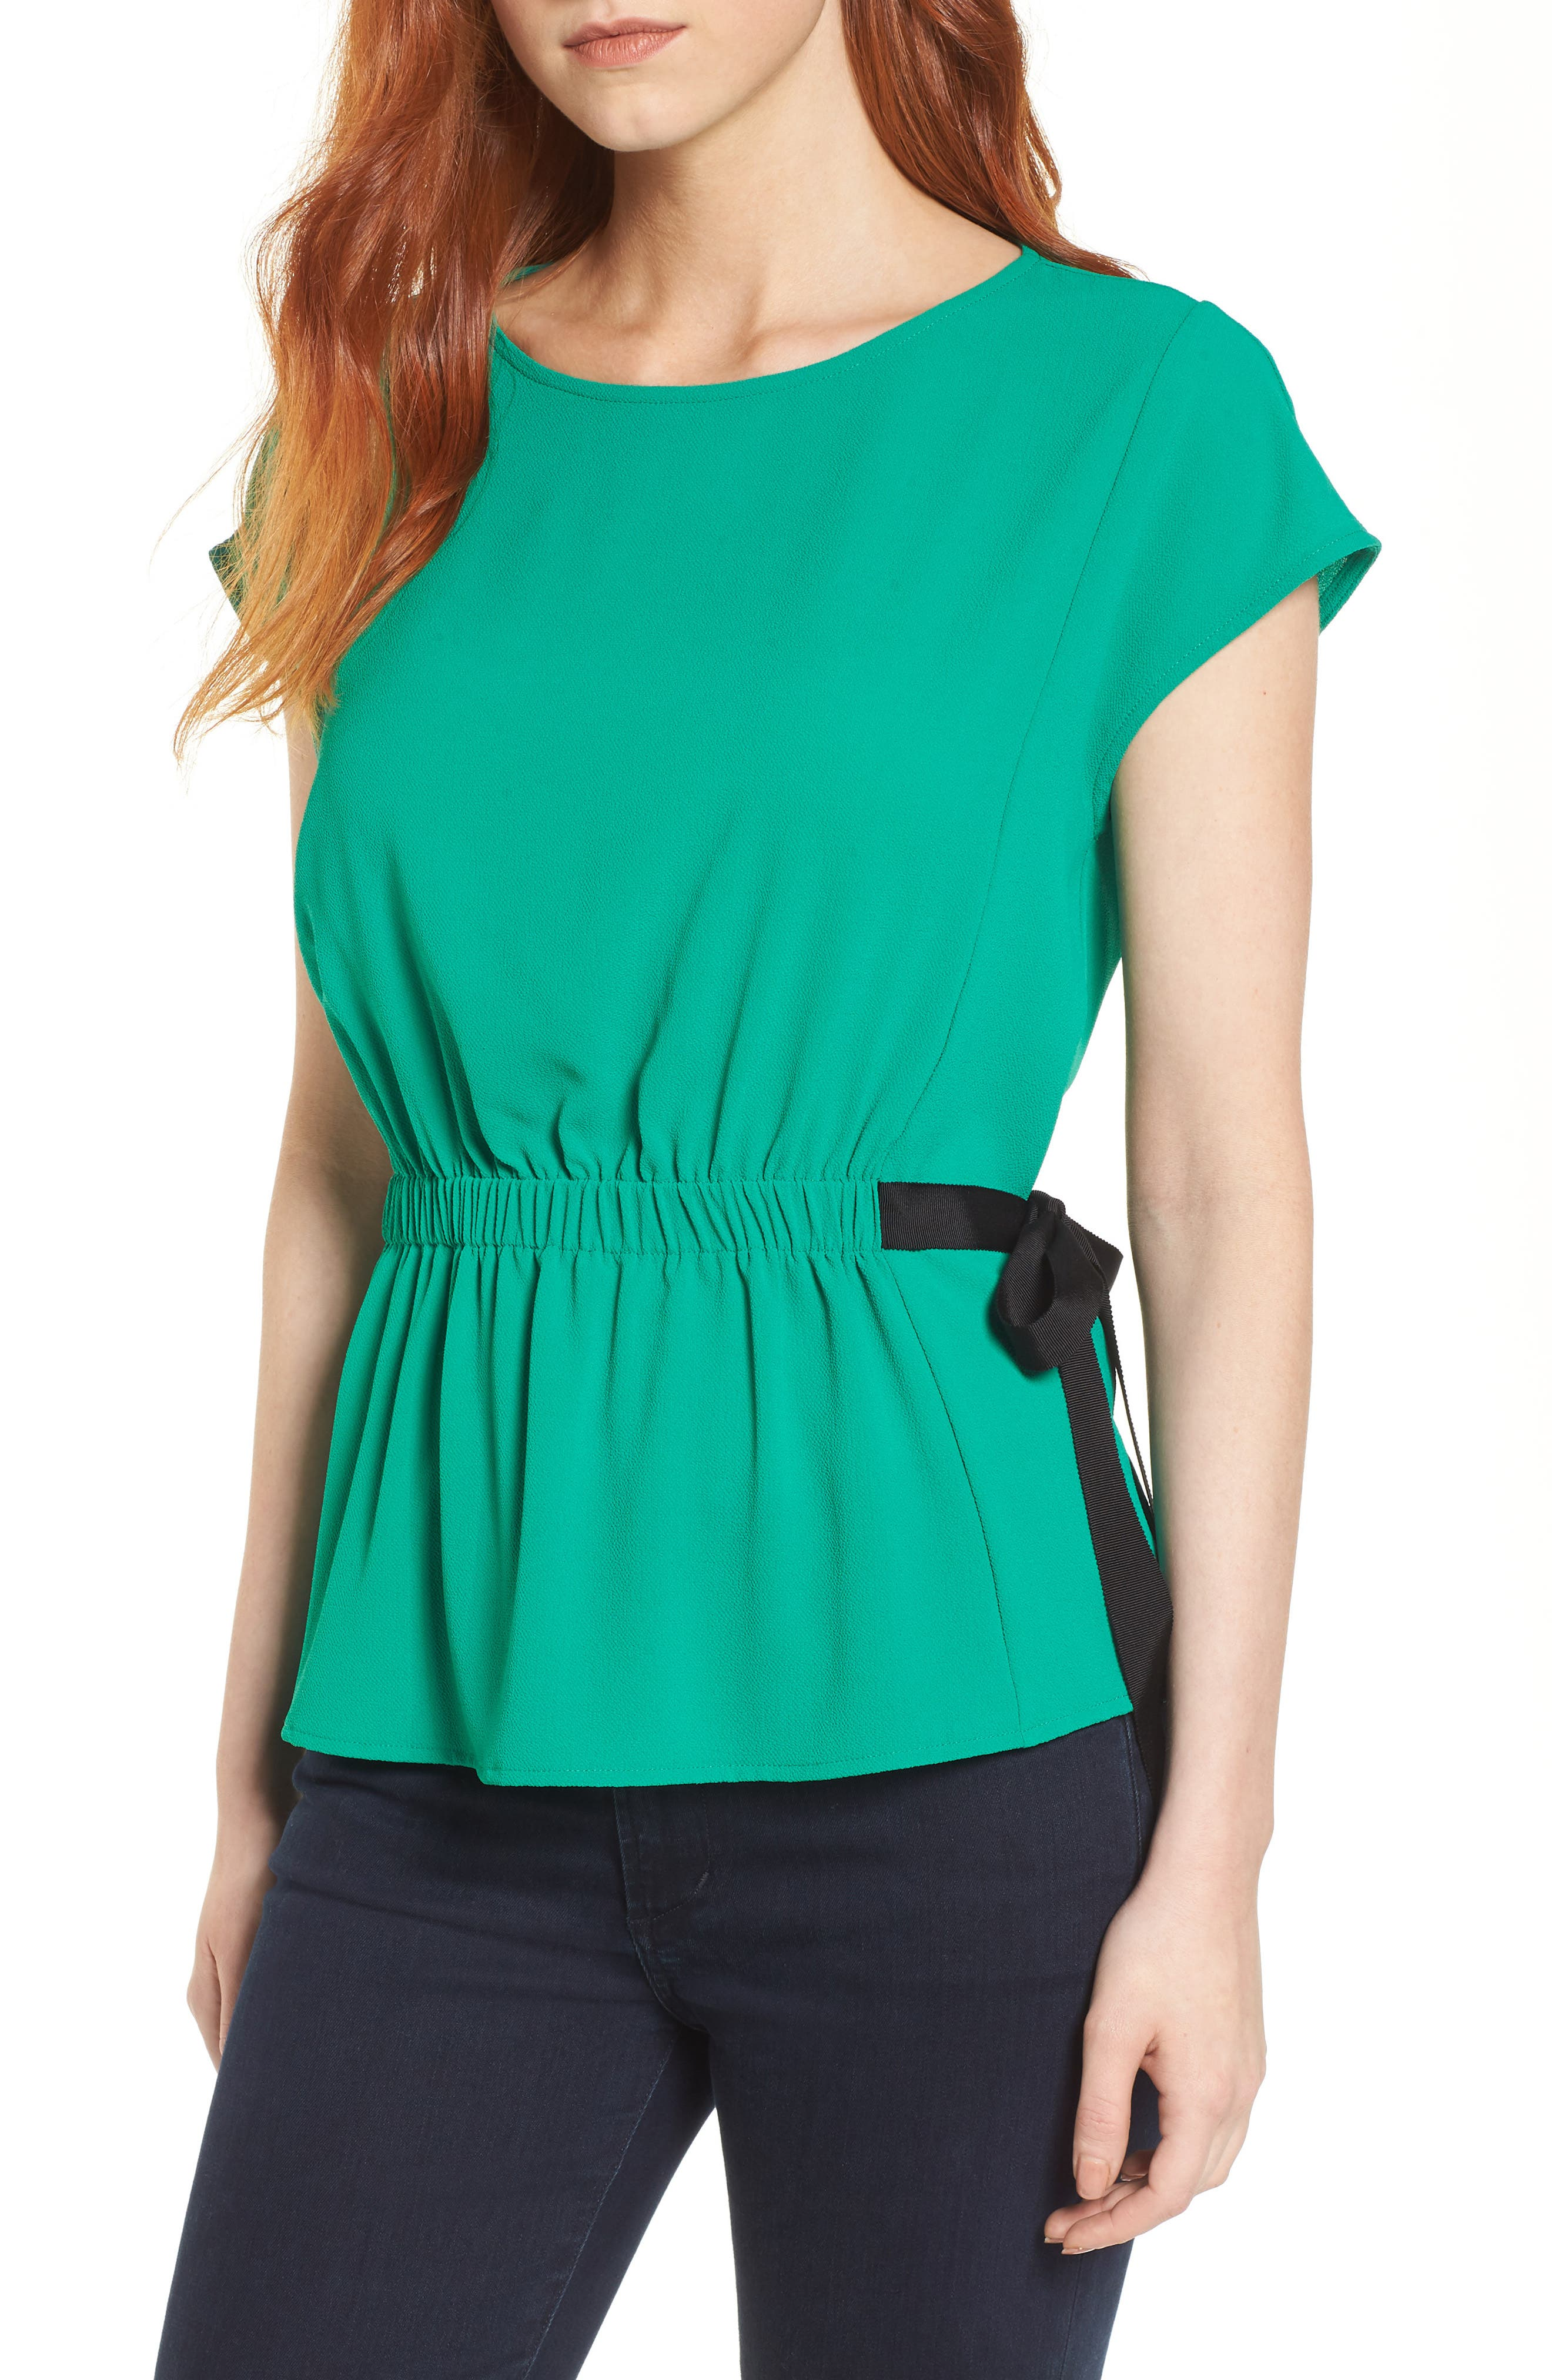 Gathered Waist Side Tie Top,                             Main thumbnail 1, color,                             Kelly Green With Black Tie